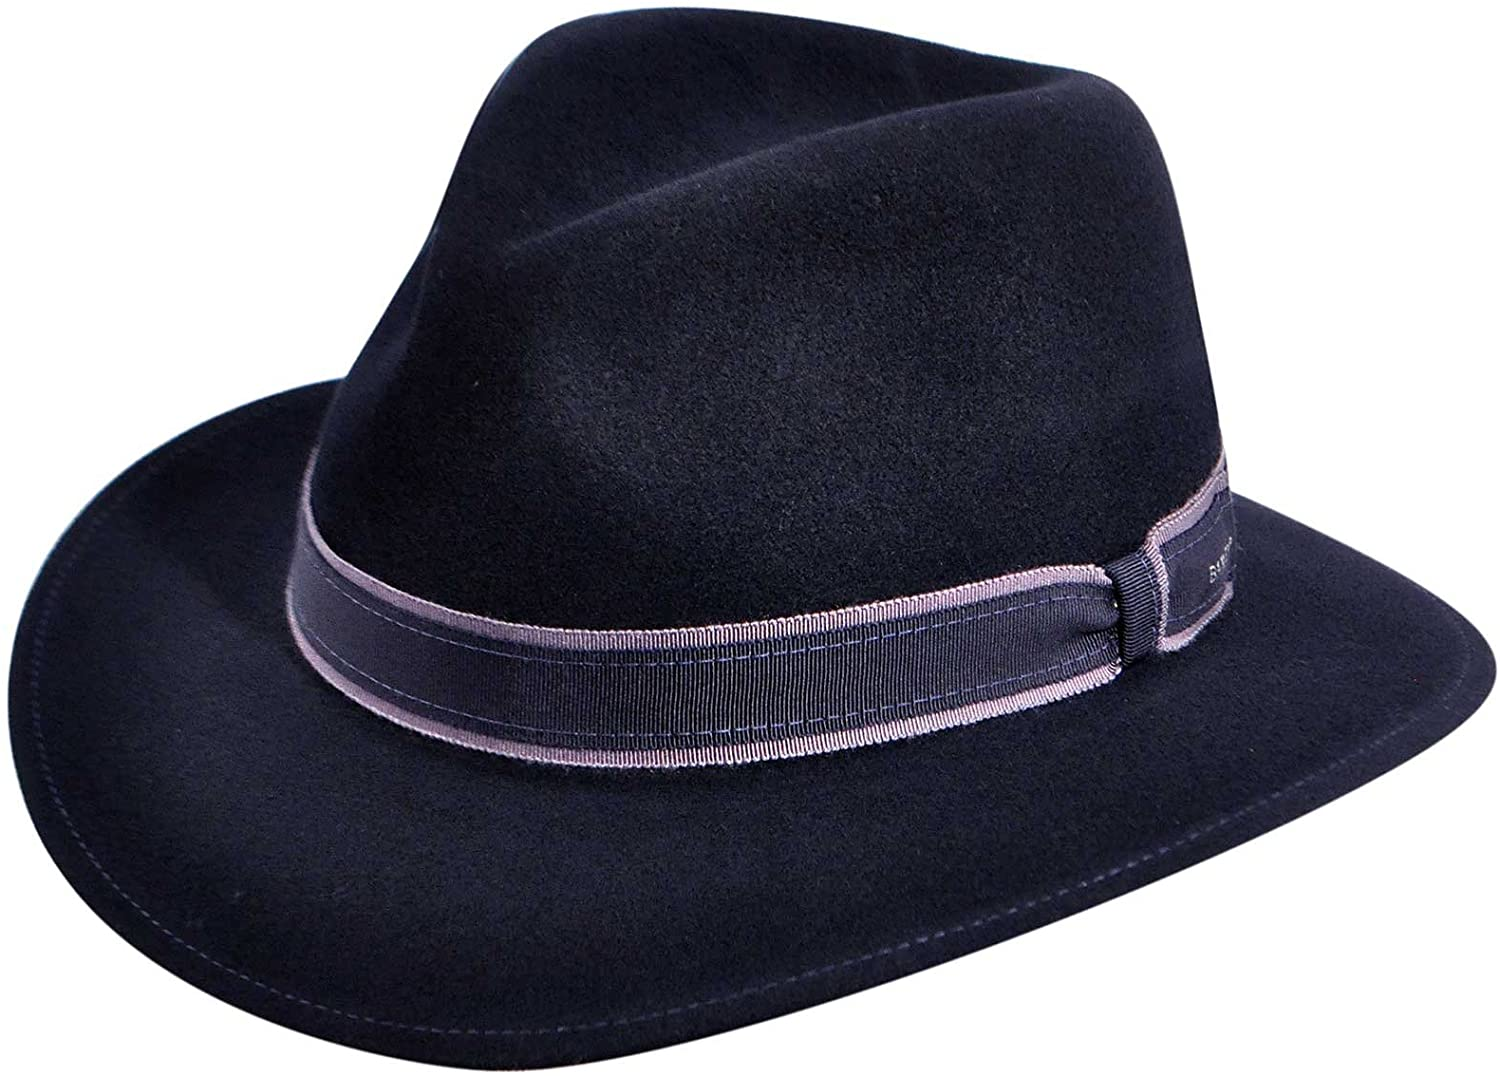 Bailey of Hollywood Male Male Artis Fedora